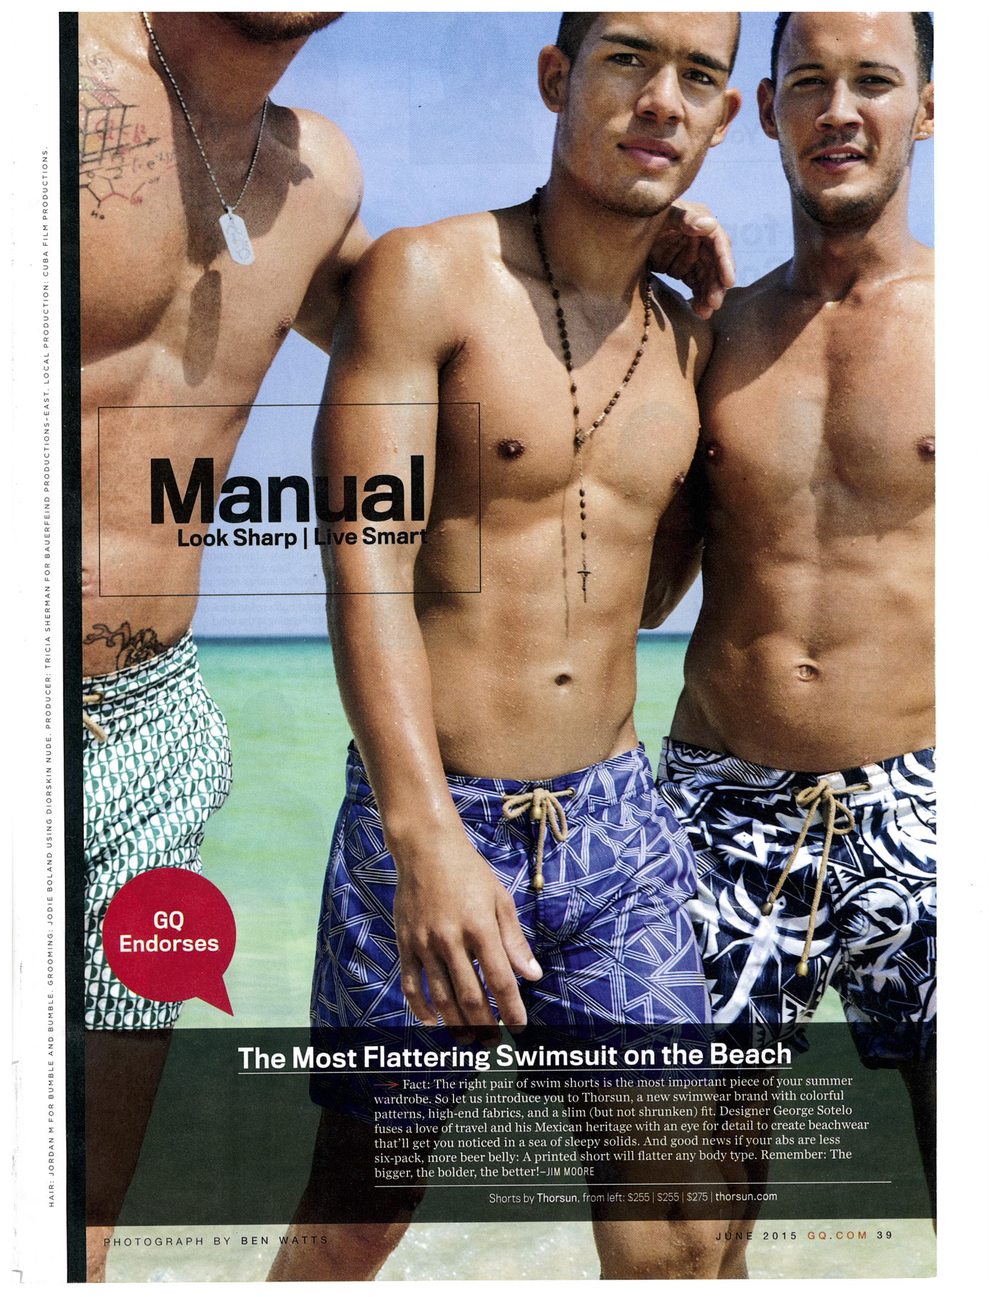 GQ, GQ Magazine, The Most Flattering Swimsuit on the Beach, Thorsun, Thorsun Swim